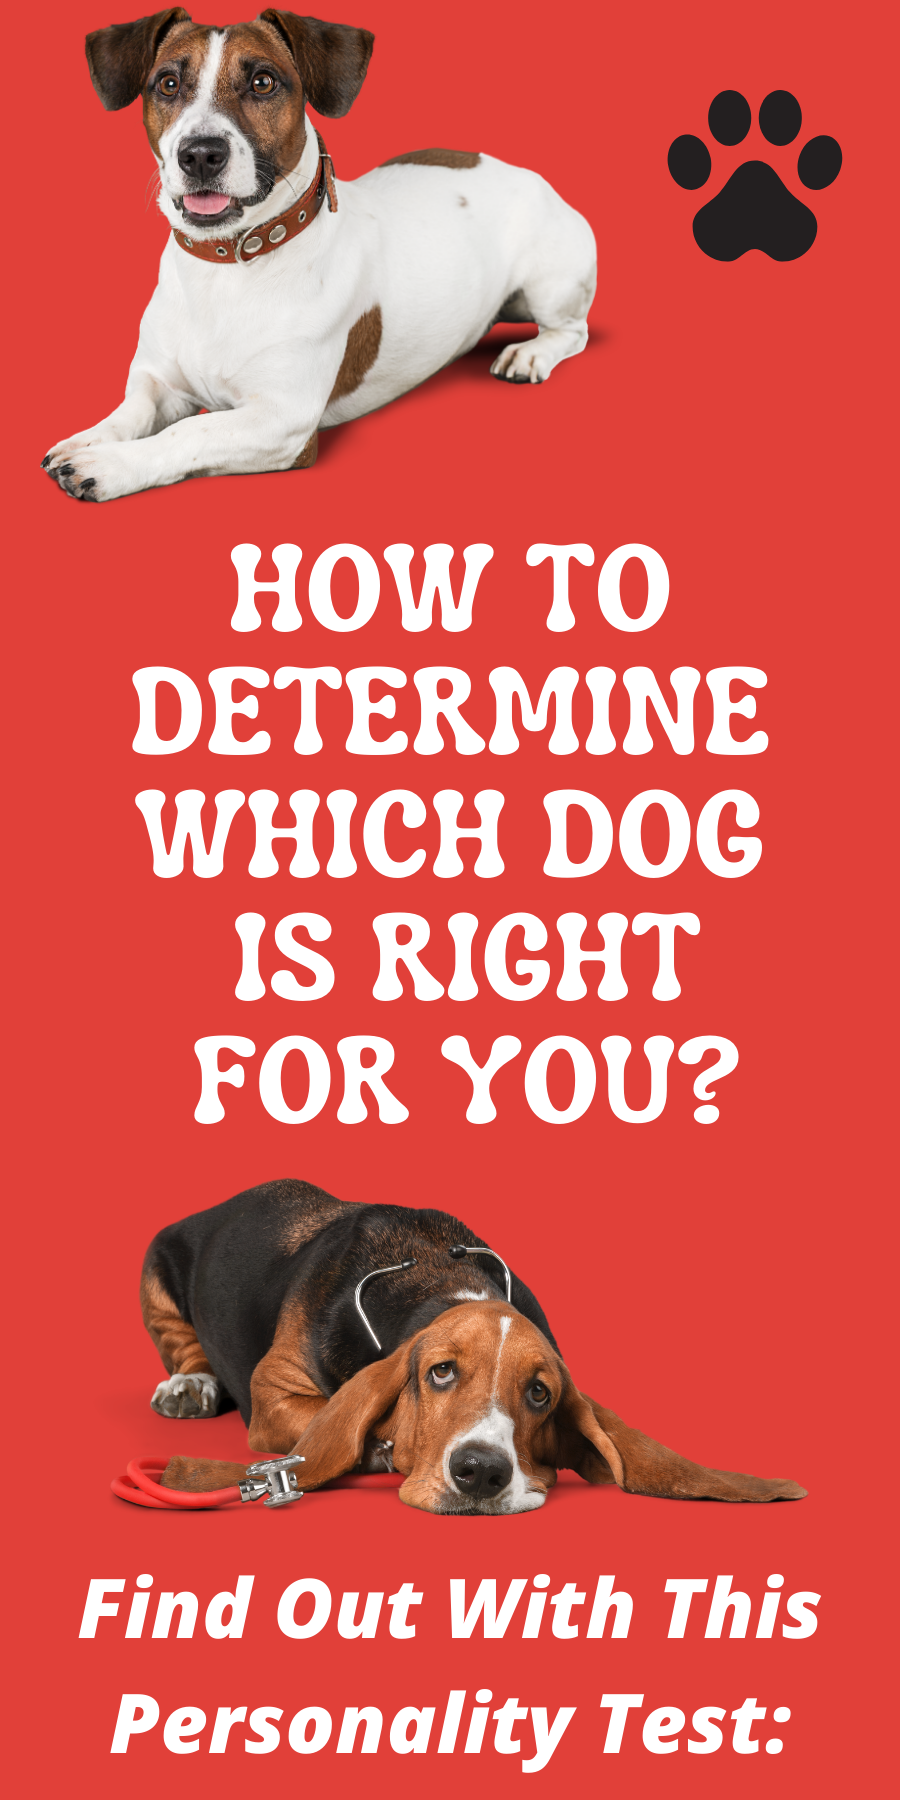 How To Determine Which Dog Is Right For You? According To Your Personality Type! 1